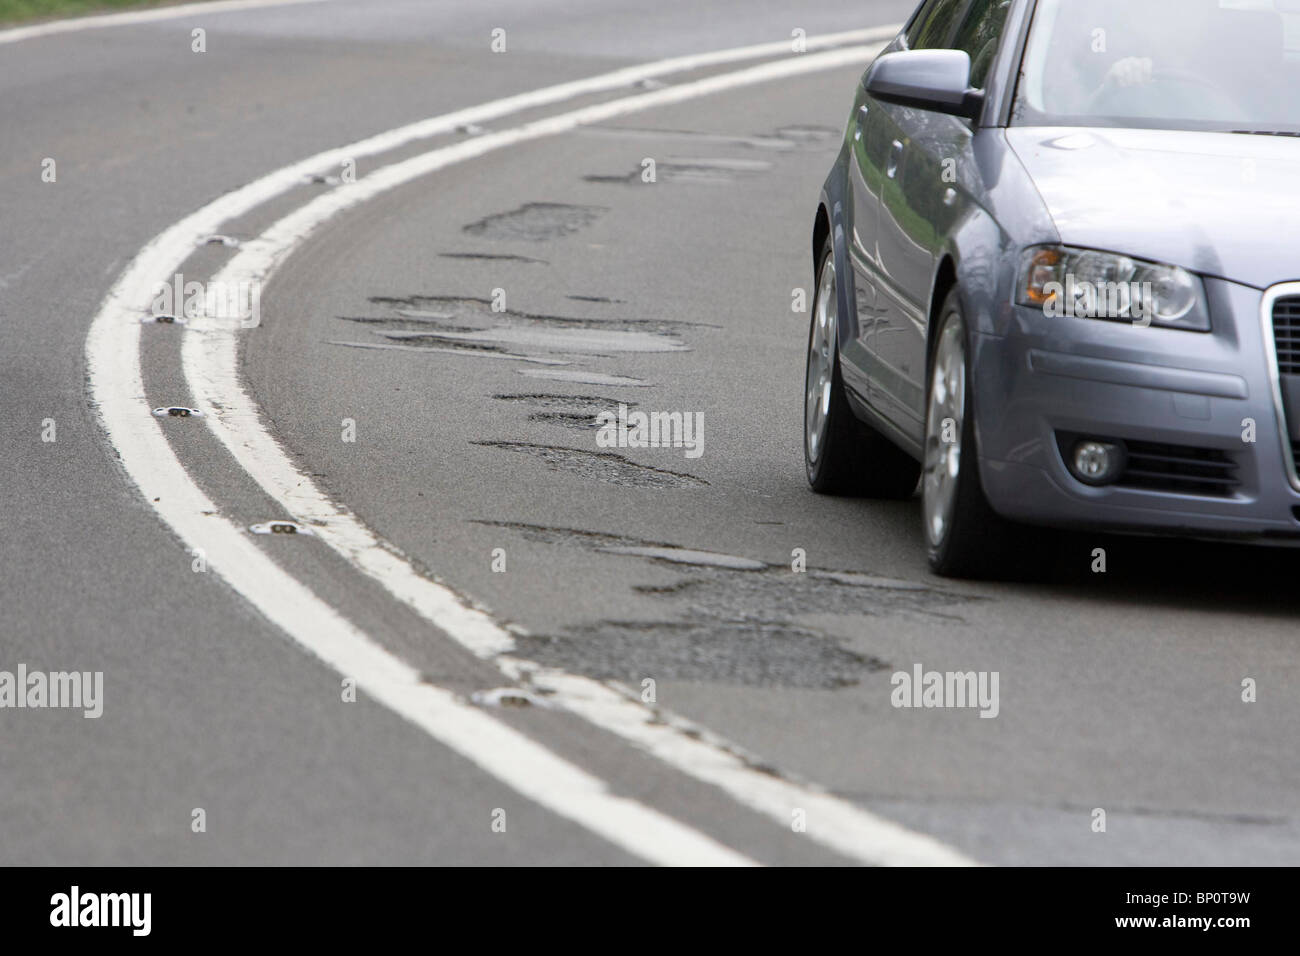 A motorist drives past a number of potholes on a country road. Picture by James Boardman. - Stock Image